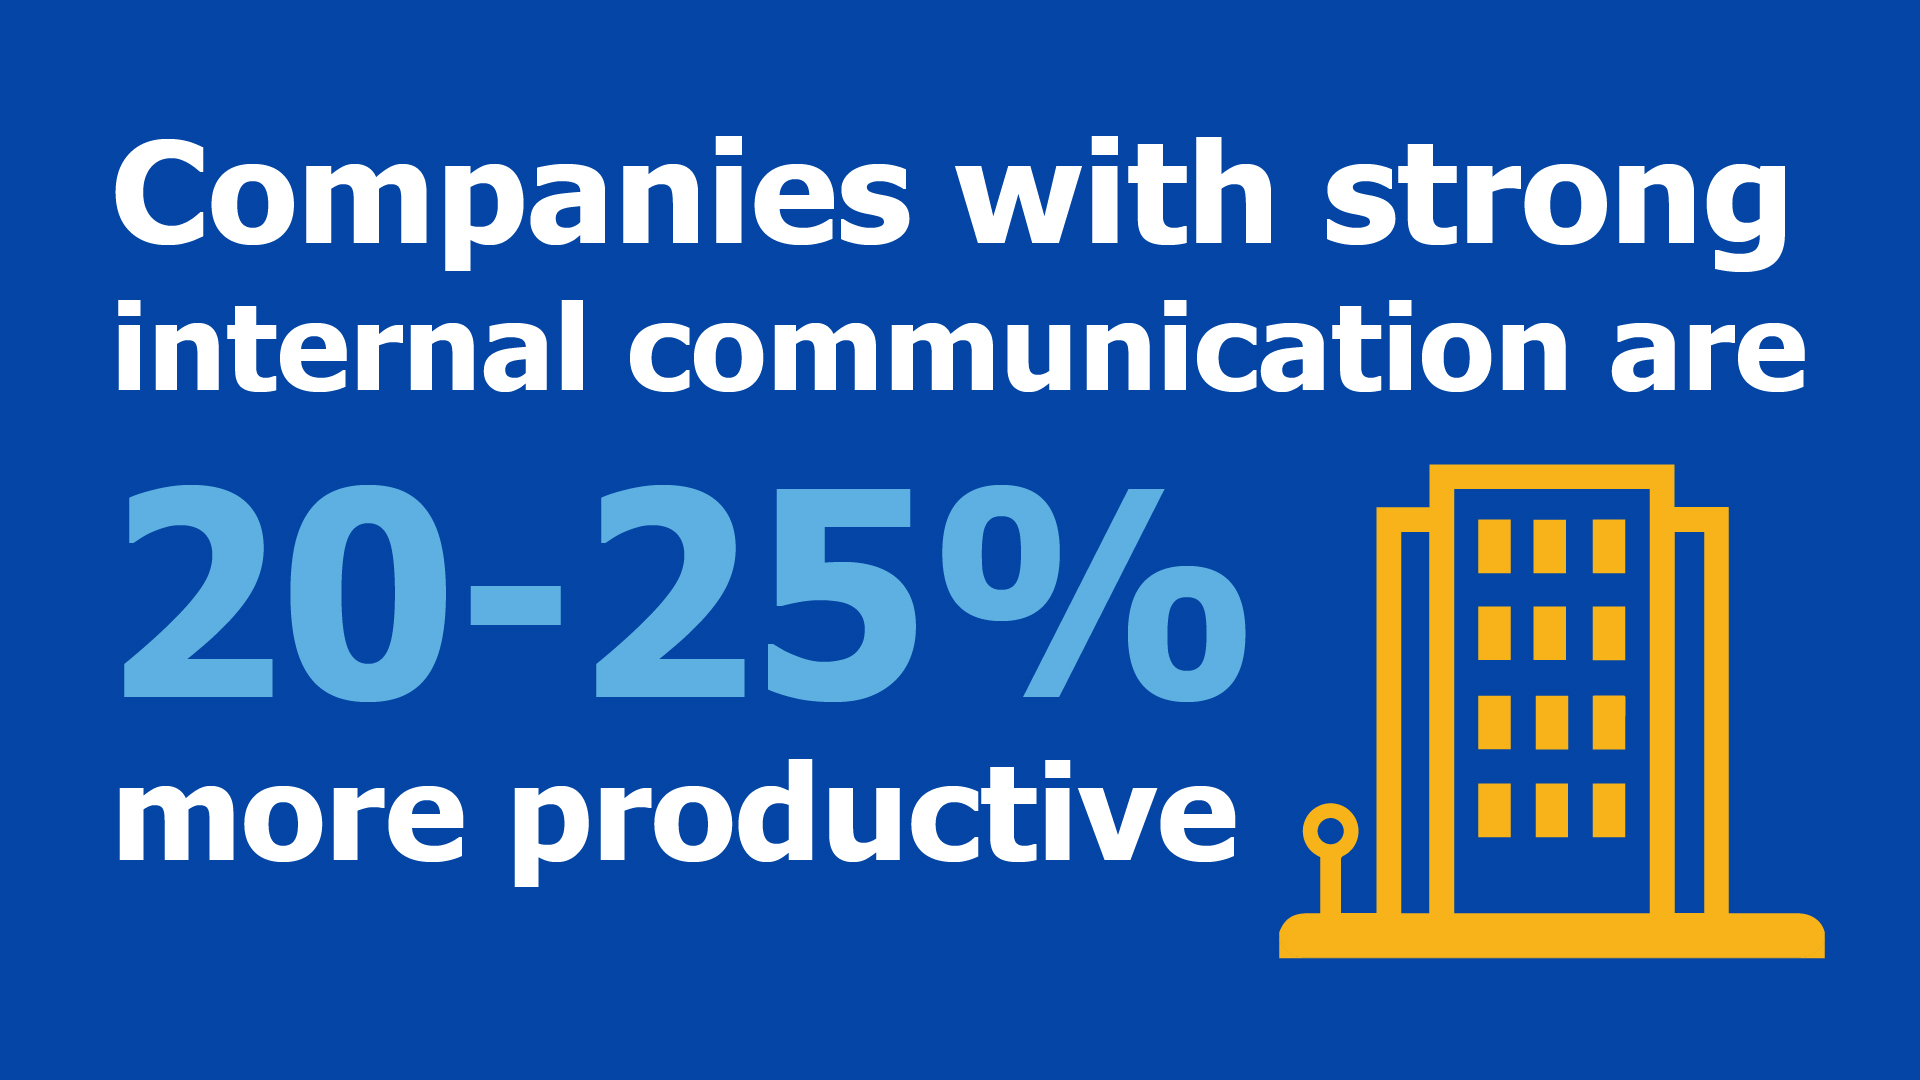 Companies with strong internal communication are 20-25% more productive.